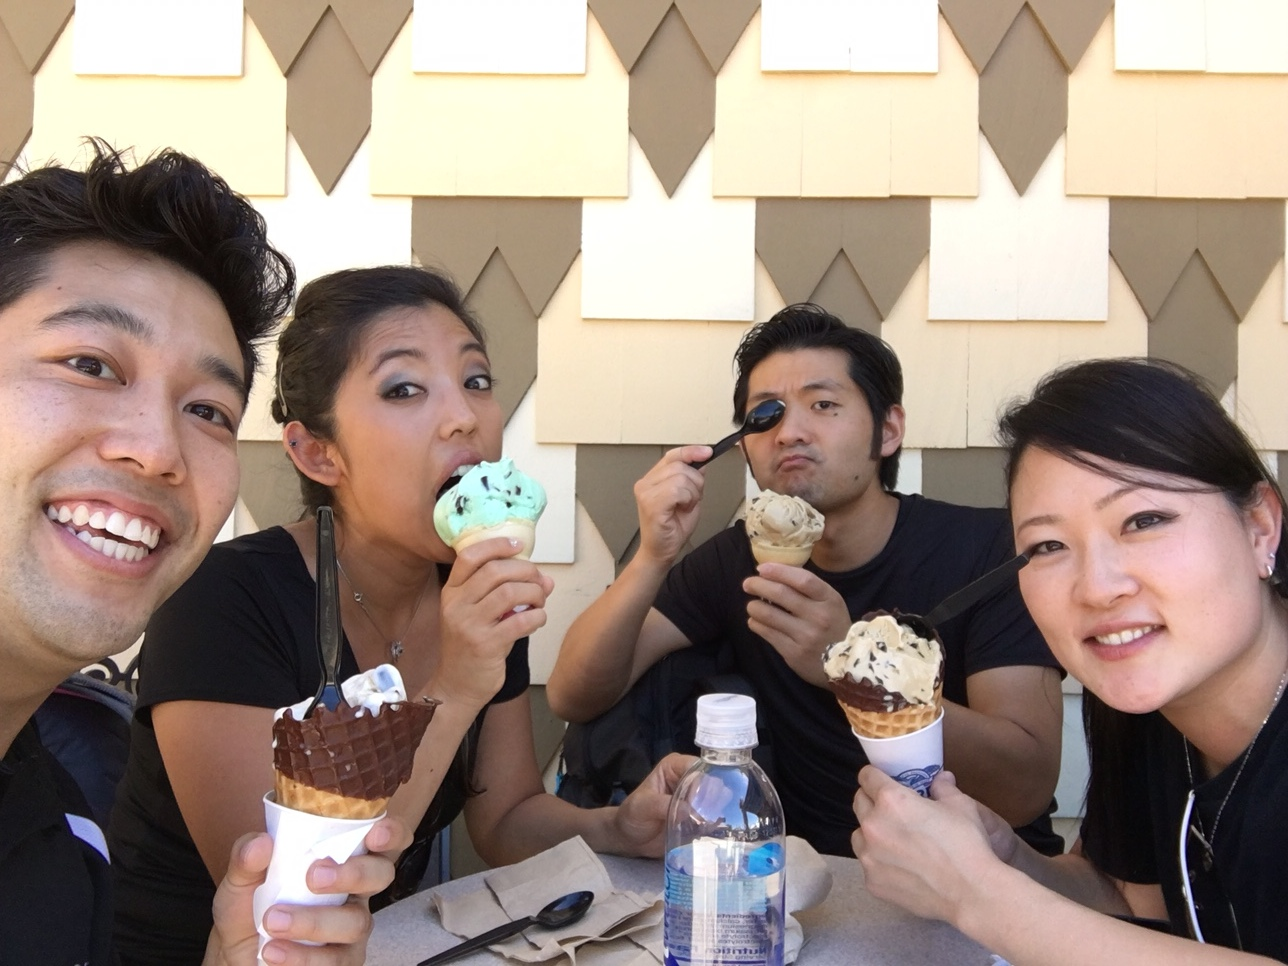 Cool down with Ice Cream!